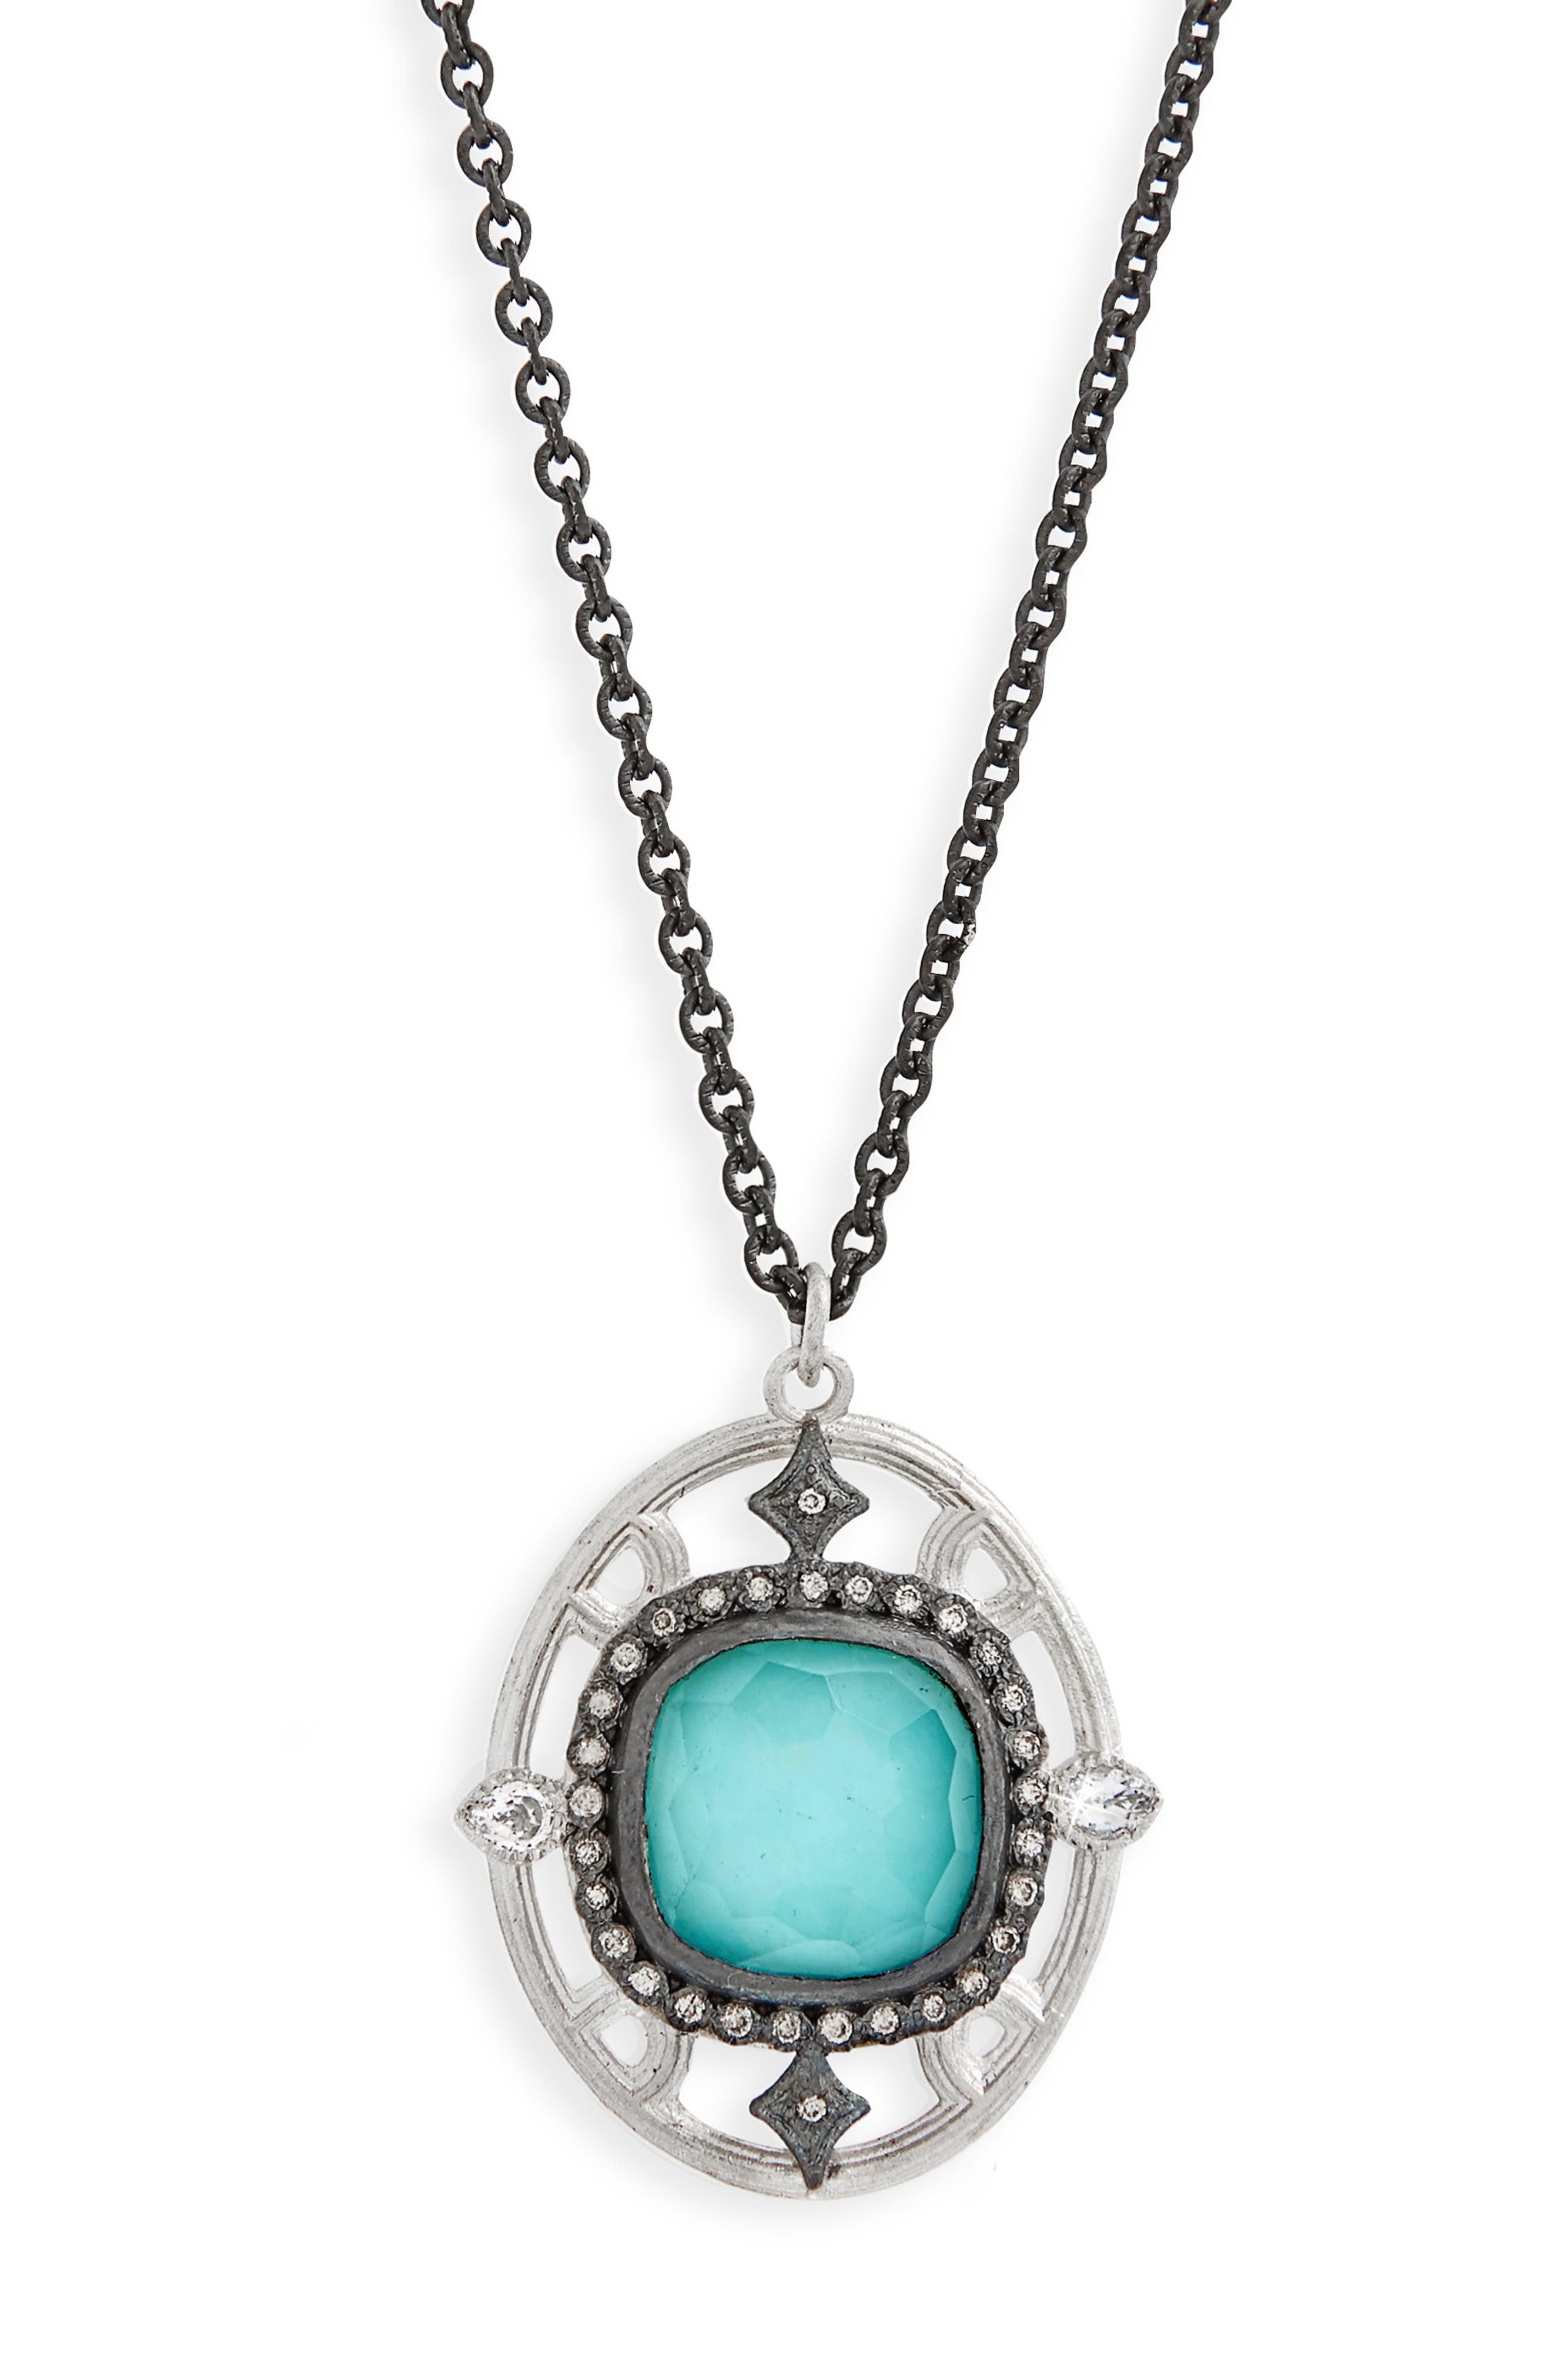 New World Crivelli Oval Drop Pendant Necklace,                             Main thumbnail 1, color,                             SILVER/ TURQUOISE